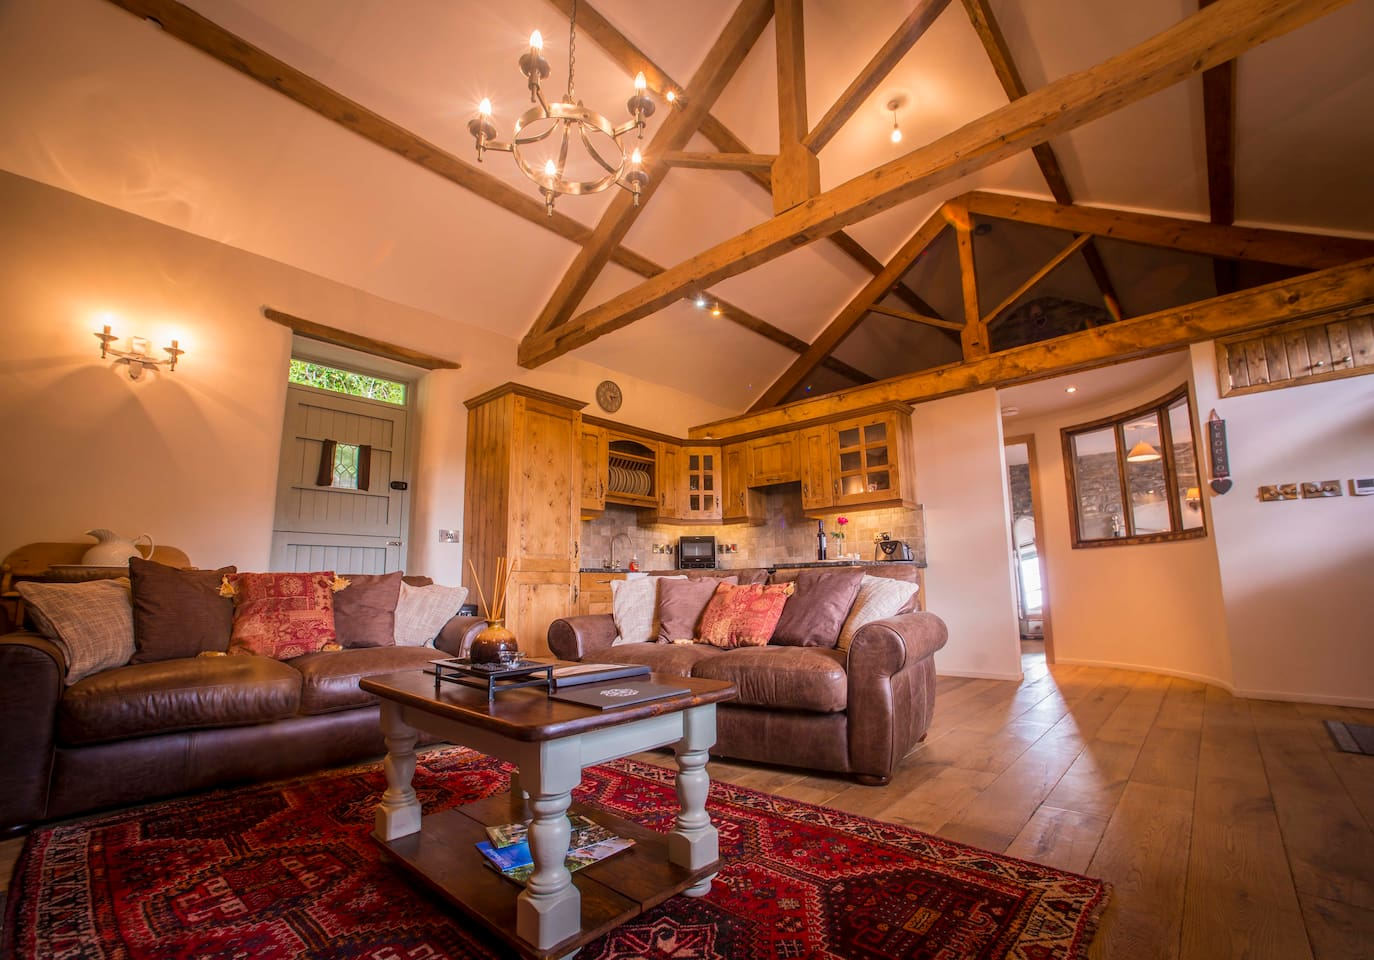 snowdonia dolydd cottage memorable airbnb